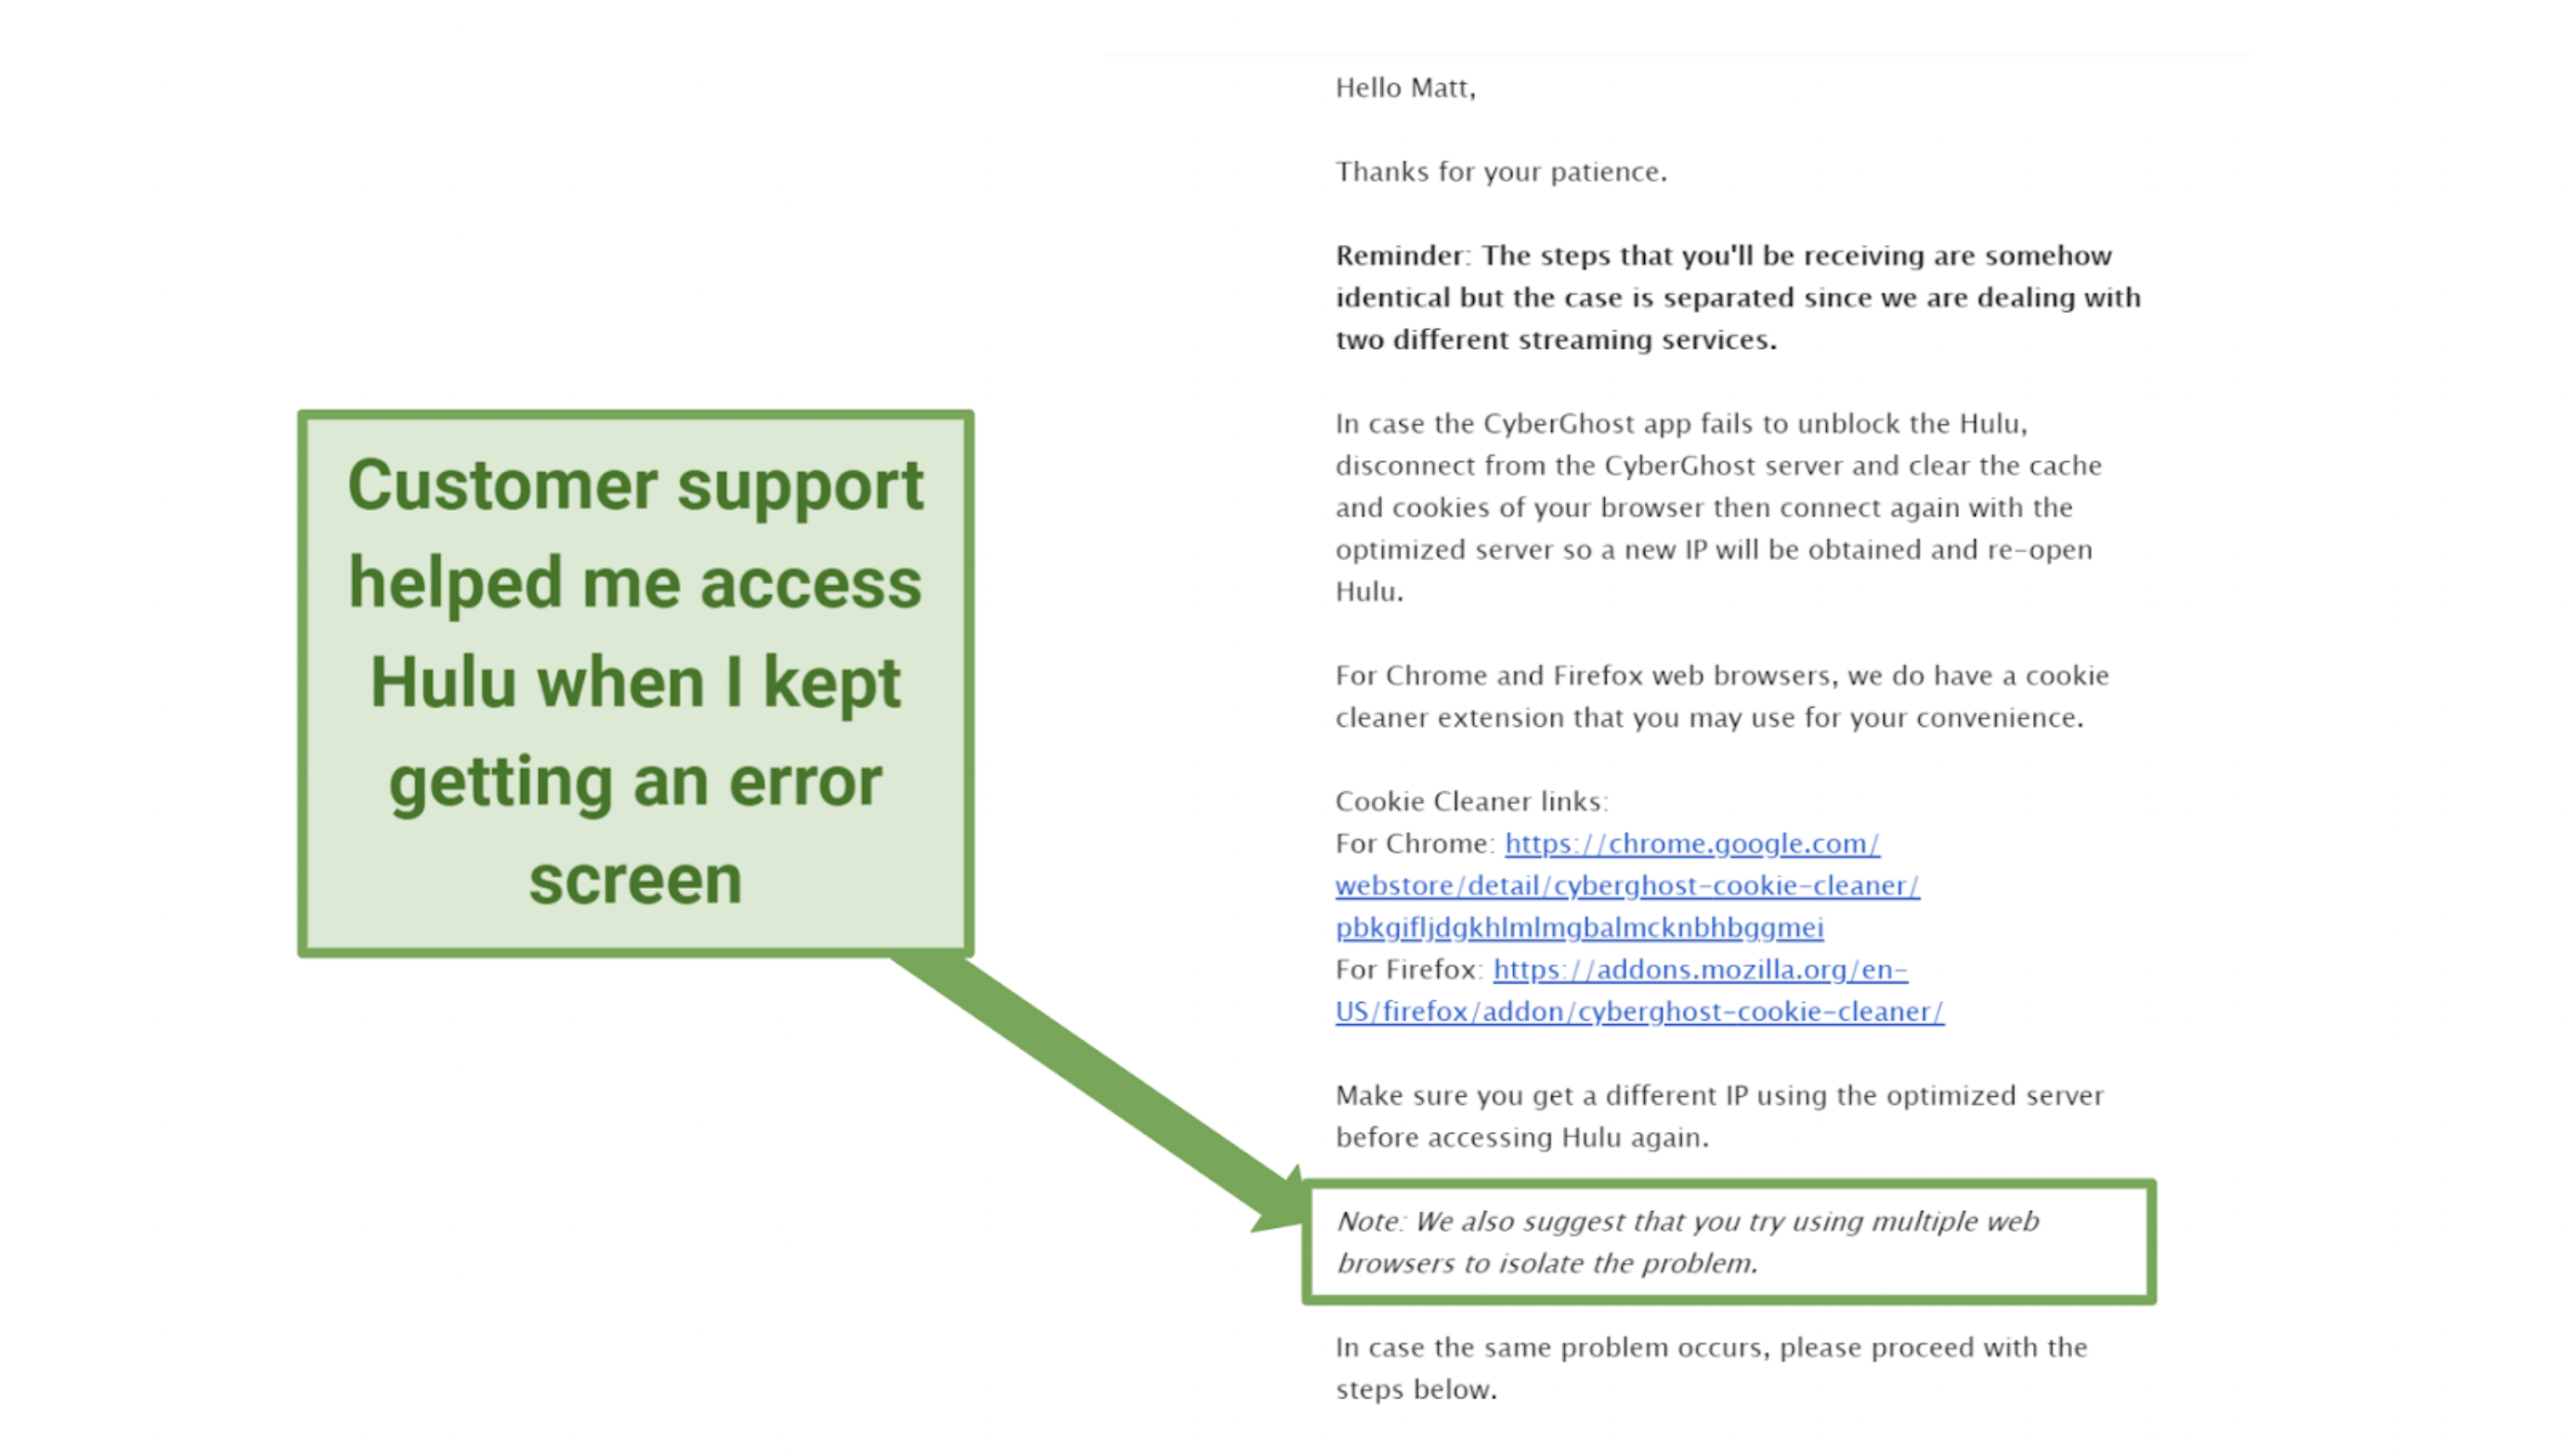 Screenshot of an email sent to me by the CyberGhost support staff troubleshooting problems connecting to Hulu.